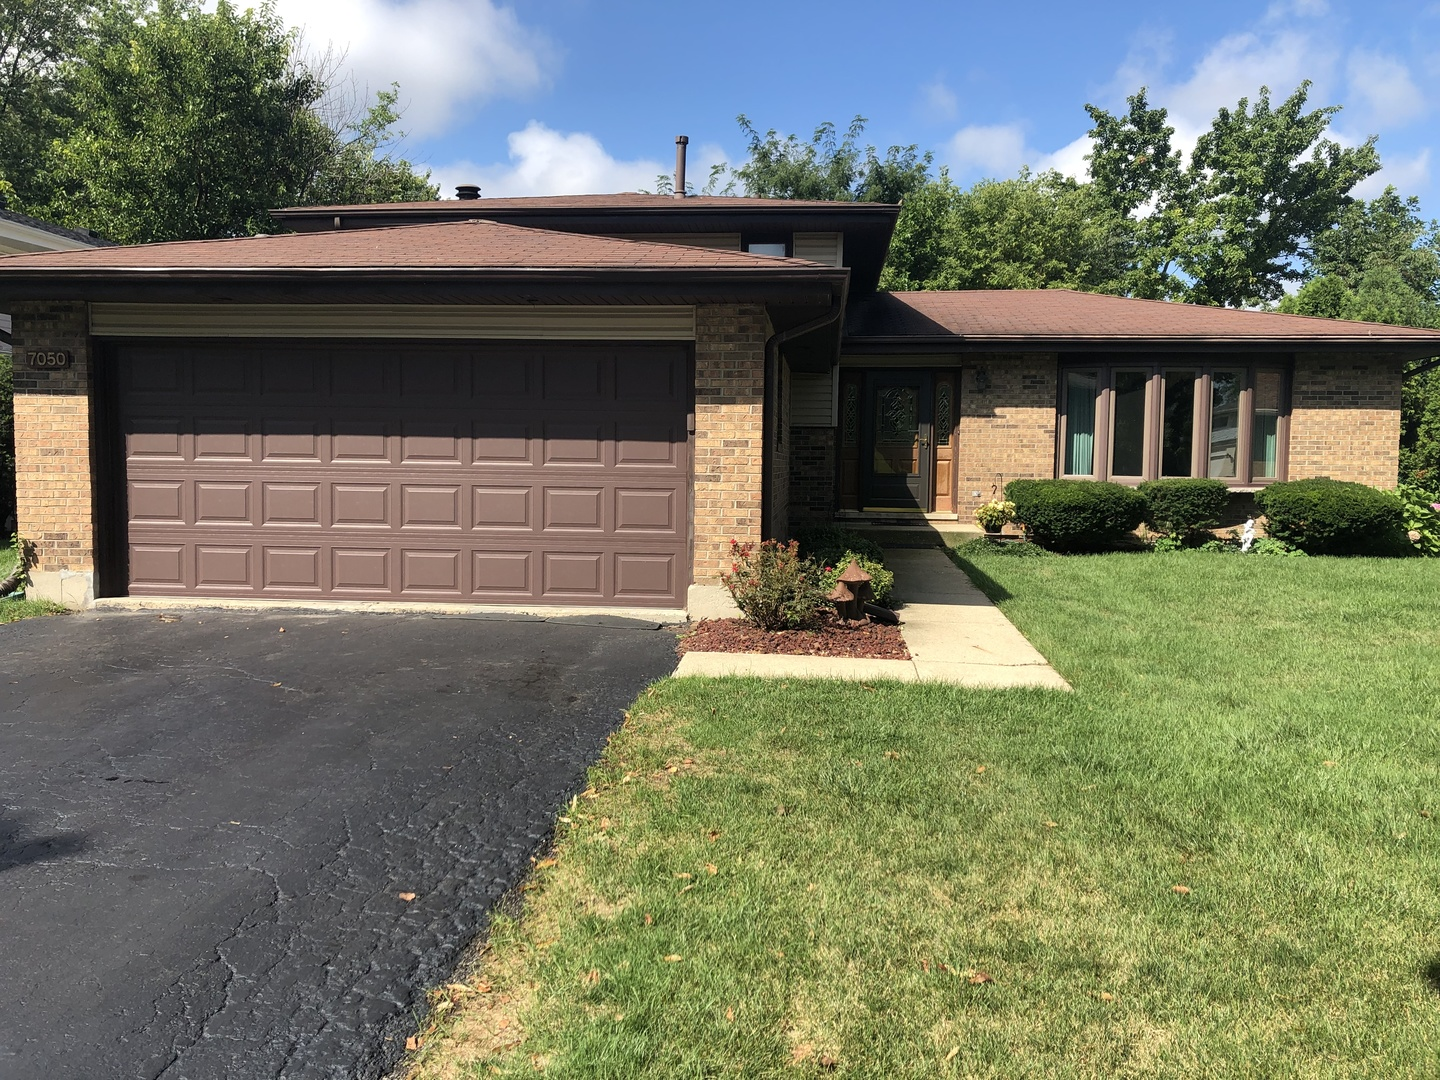 Photo for 7050 Foster Road, Downers Grove, IL 60516 (MLS # 10538180)